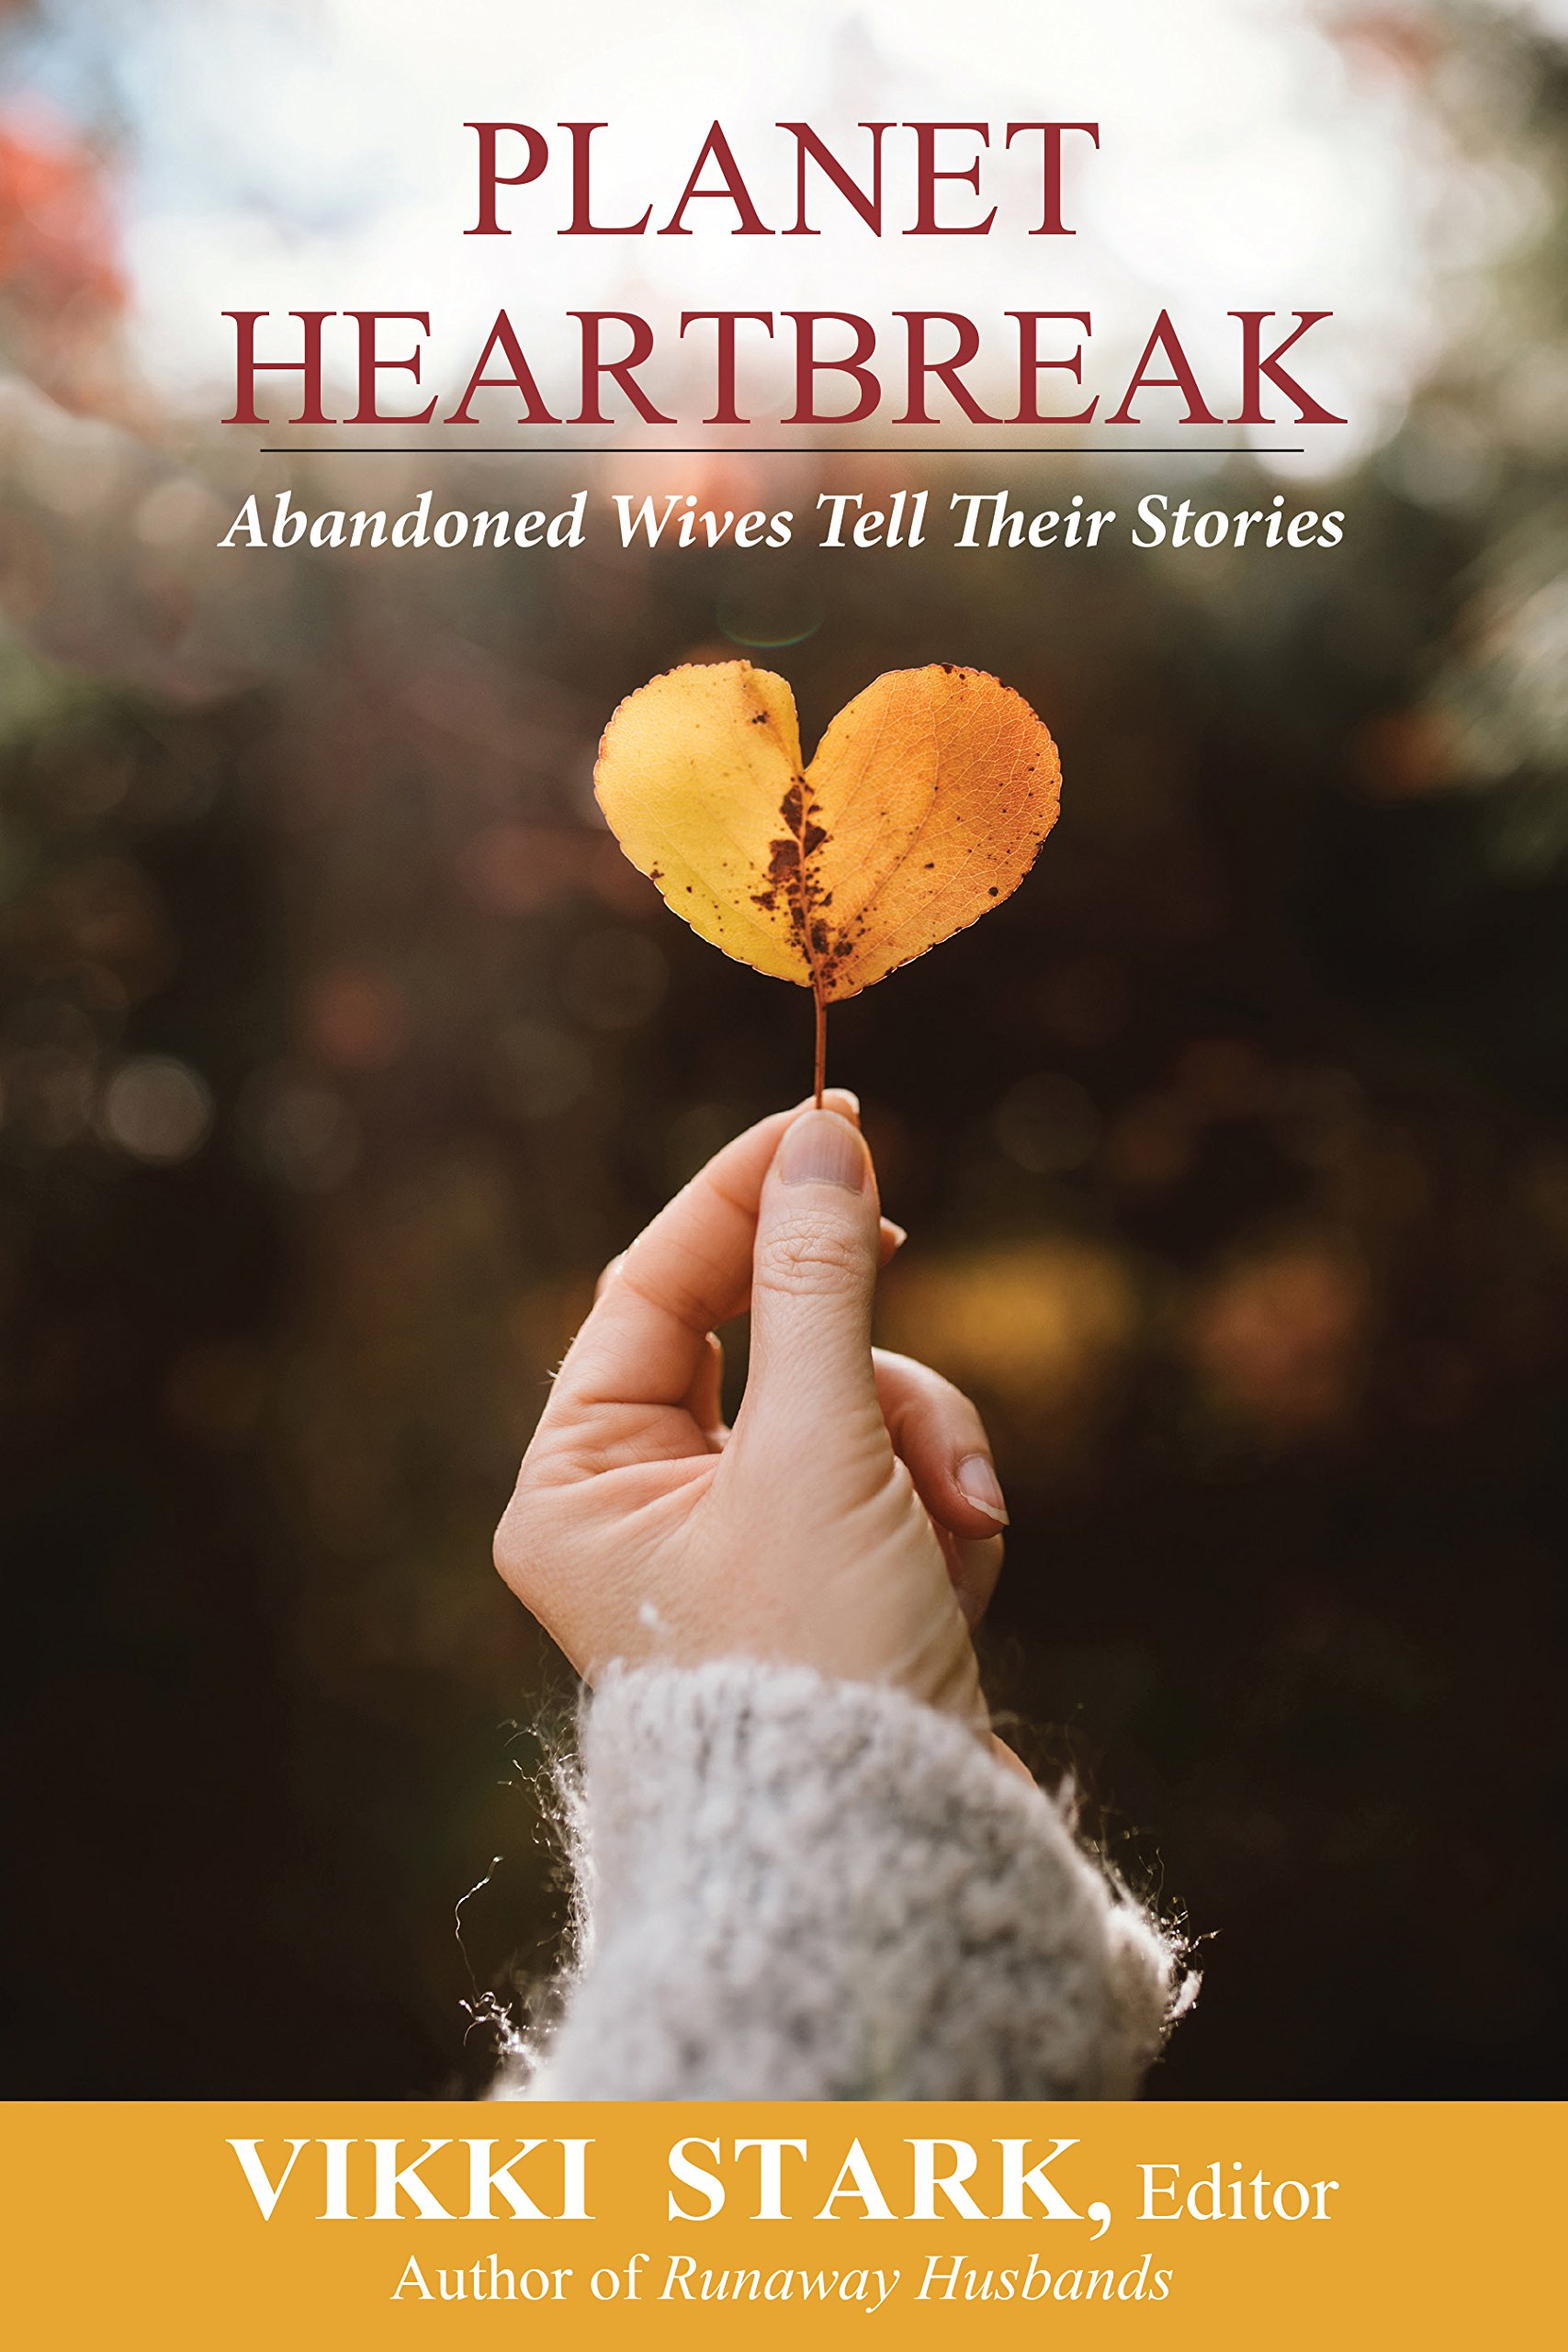 Real life stories from women whose husbands left suddenly.